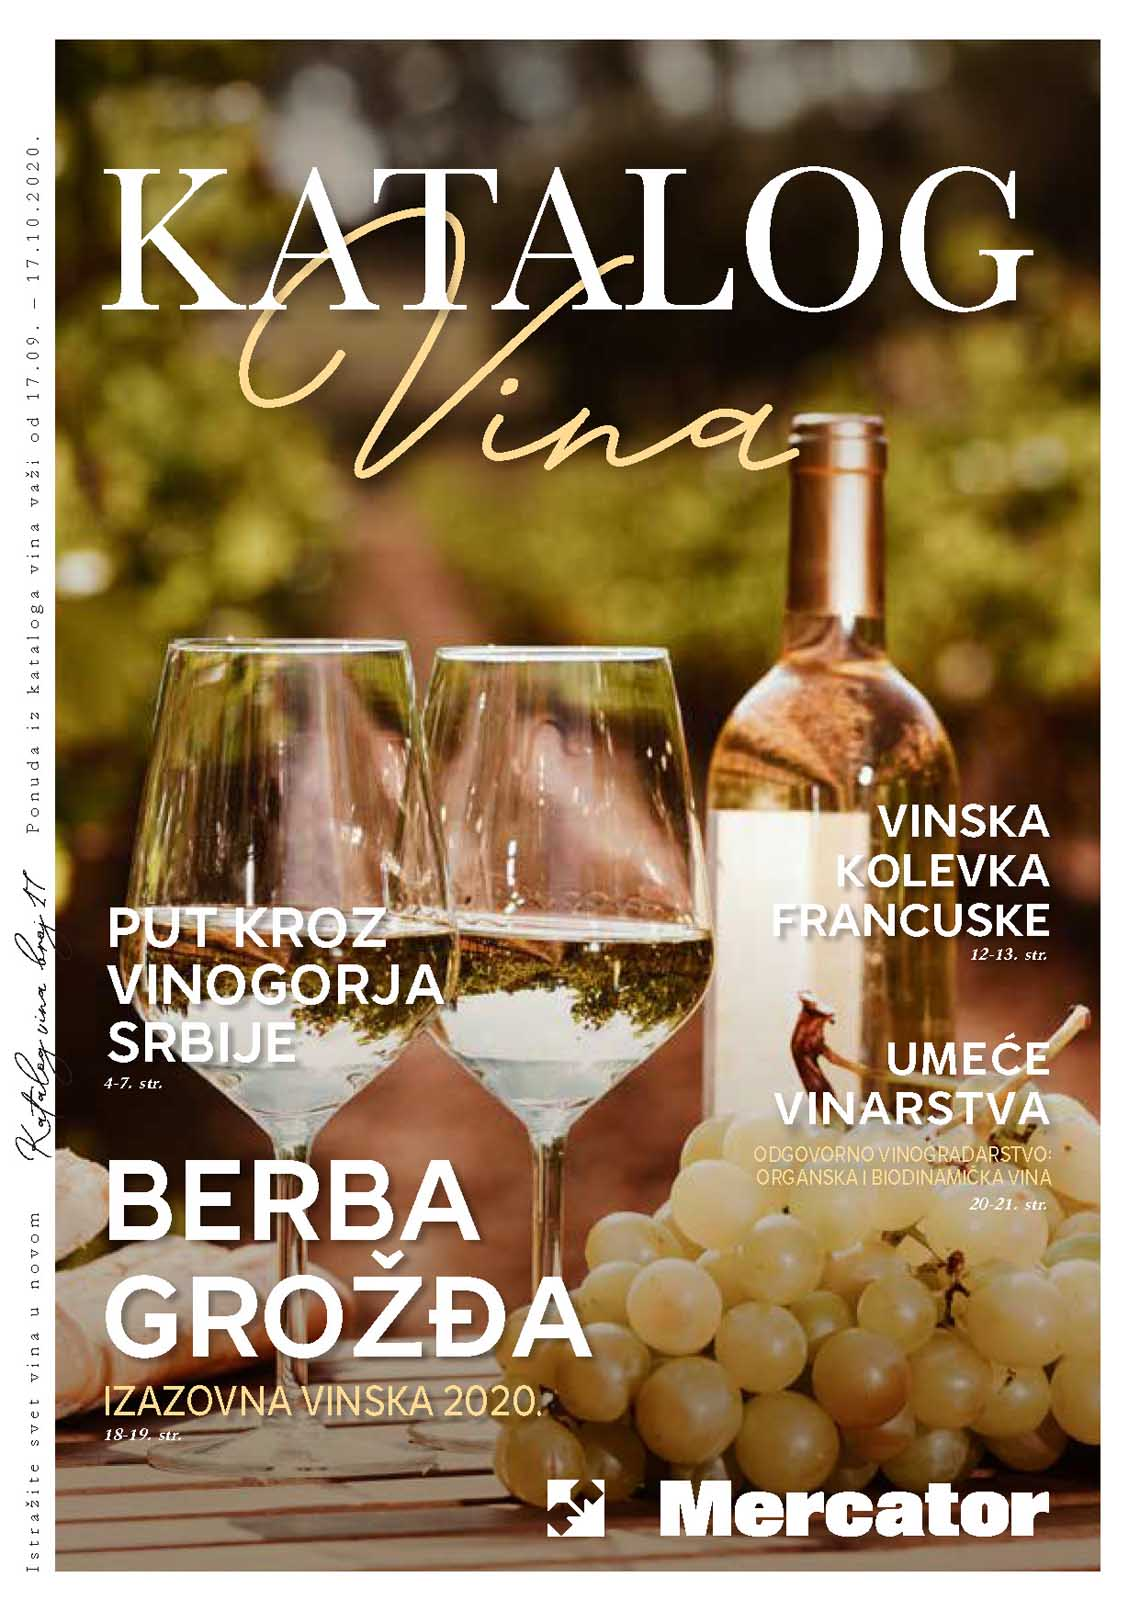 MERCATOR Katalog - KATALOG VINA - Super akcija do 17.10.2020.